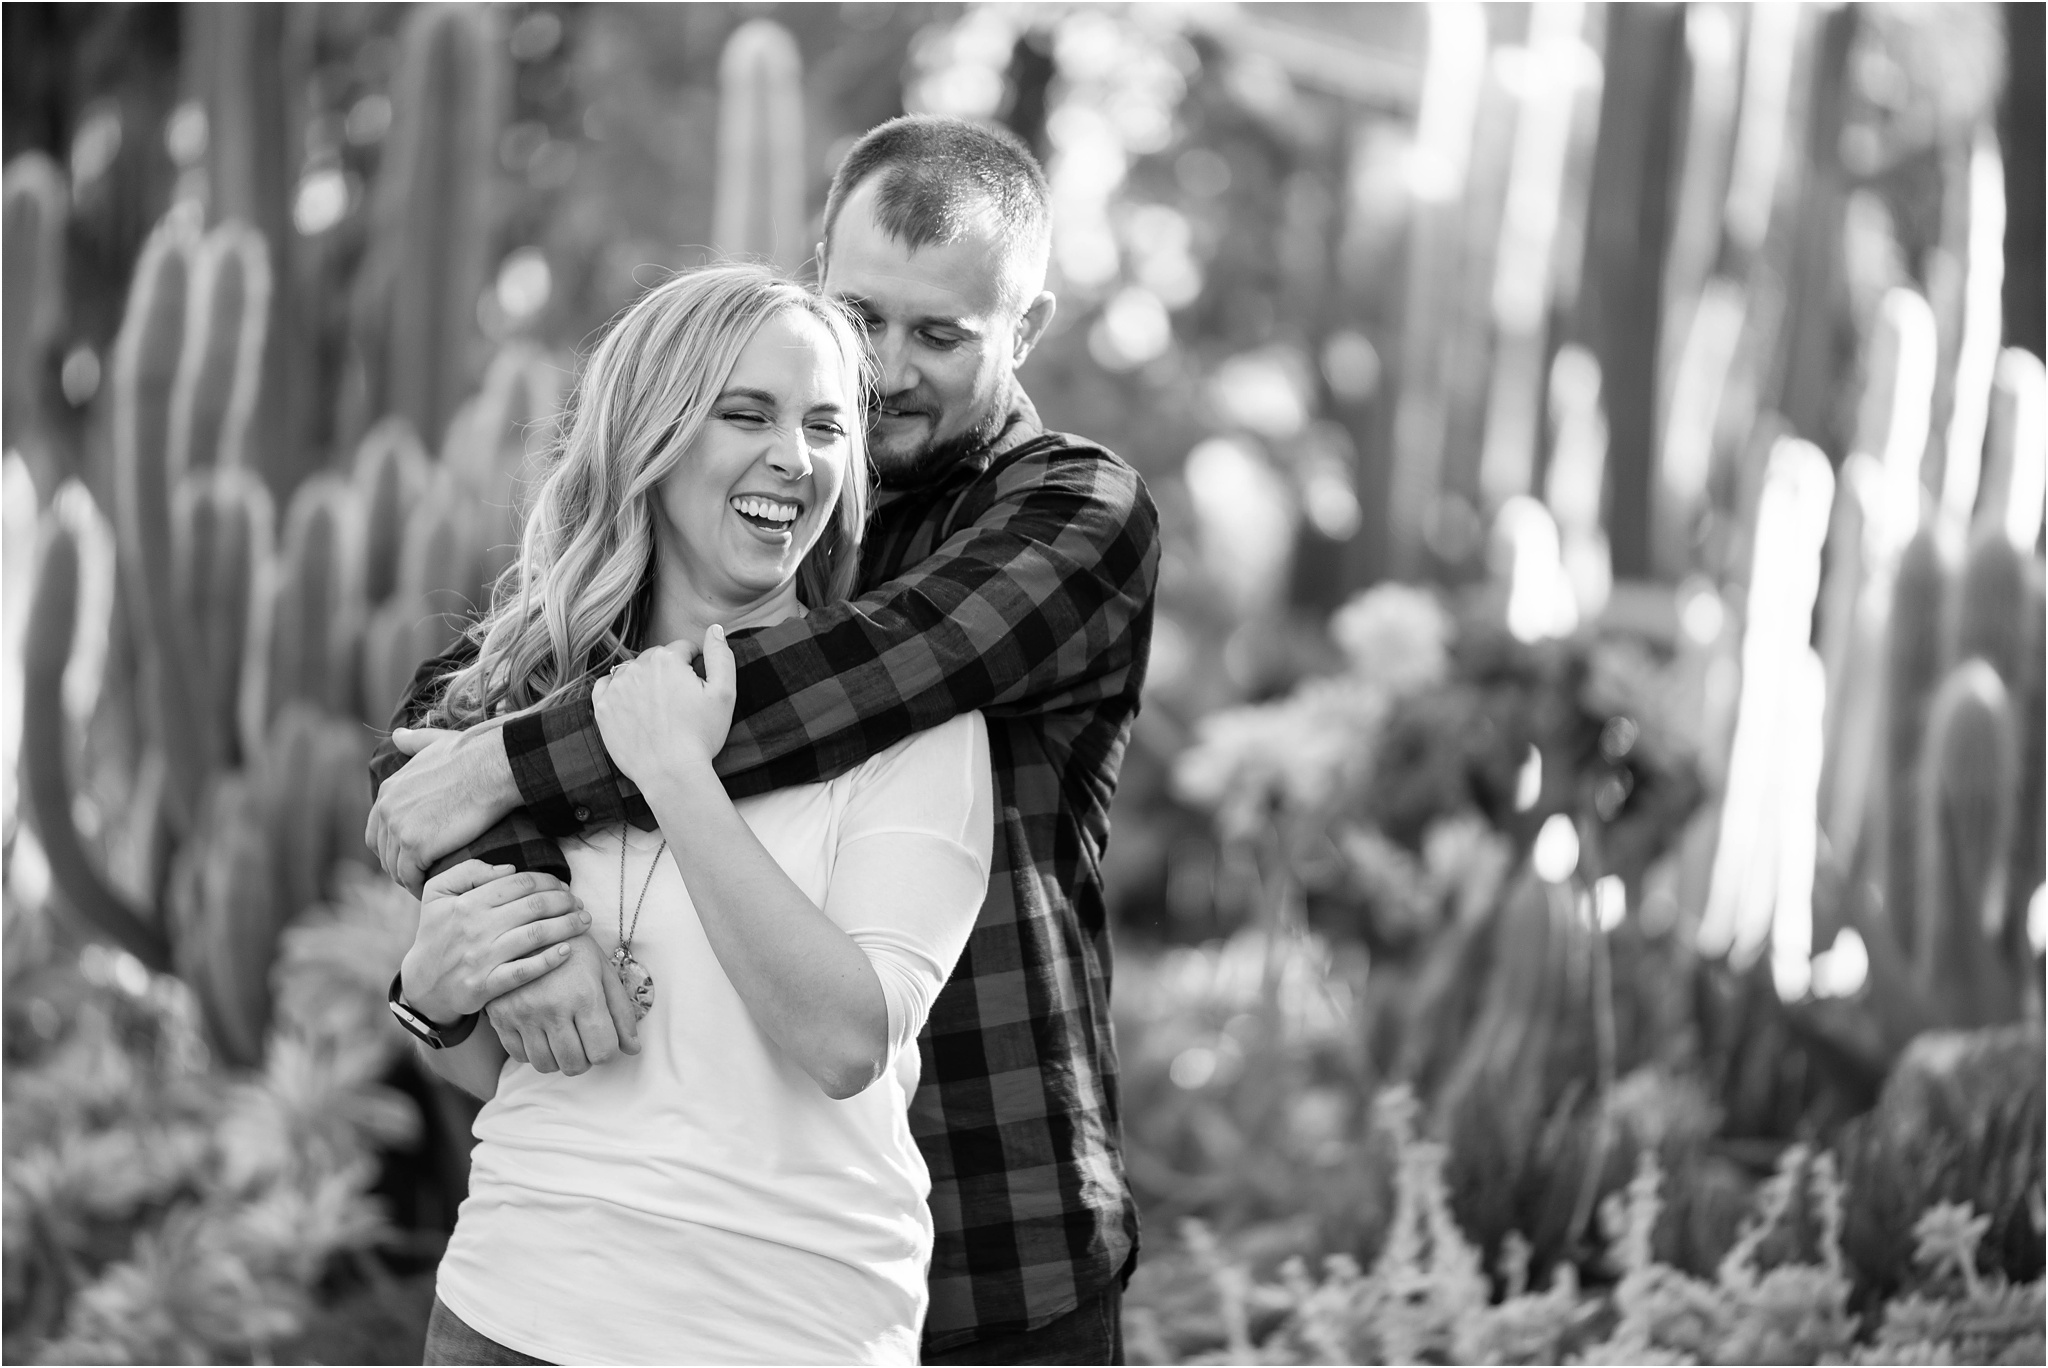 AlecandJenn_ENGAGEMENT_BrienneMichelle_036_BLOG.jpg